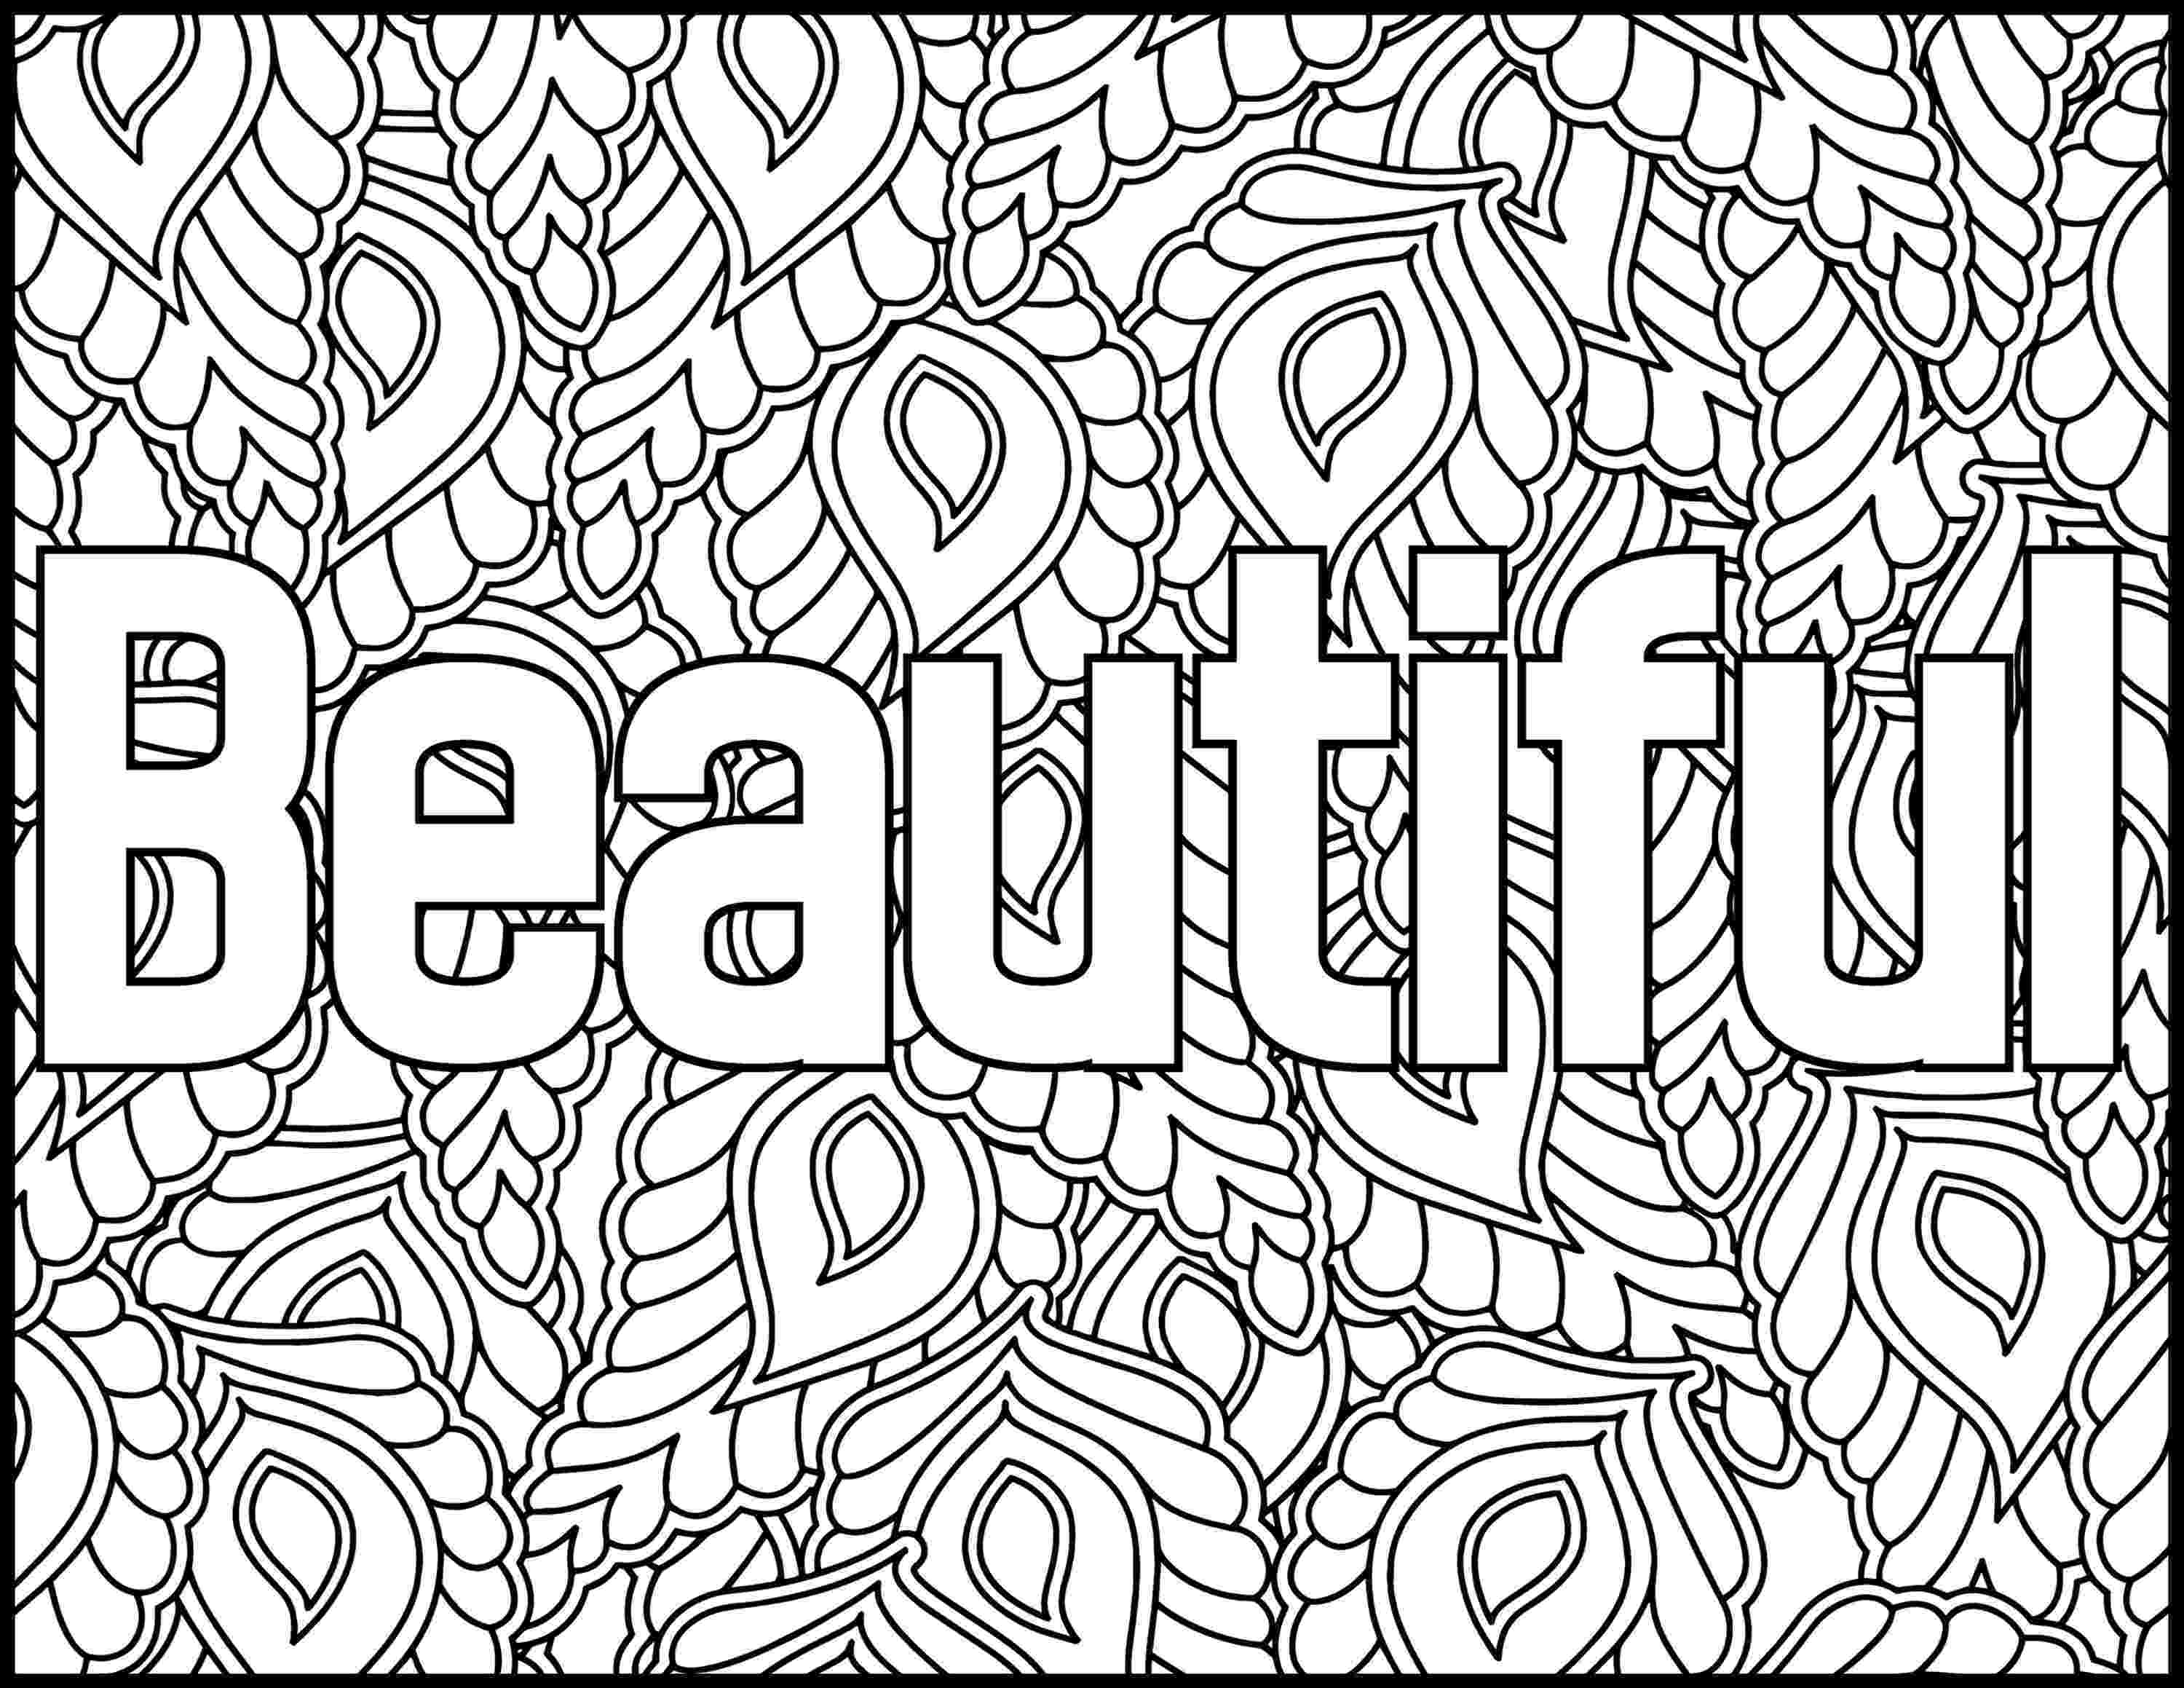 free printable quote coloring pages for adults positive affirmations coloring pages for adults beautiful pages quote coloring printable for adults free